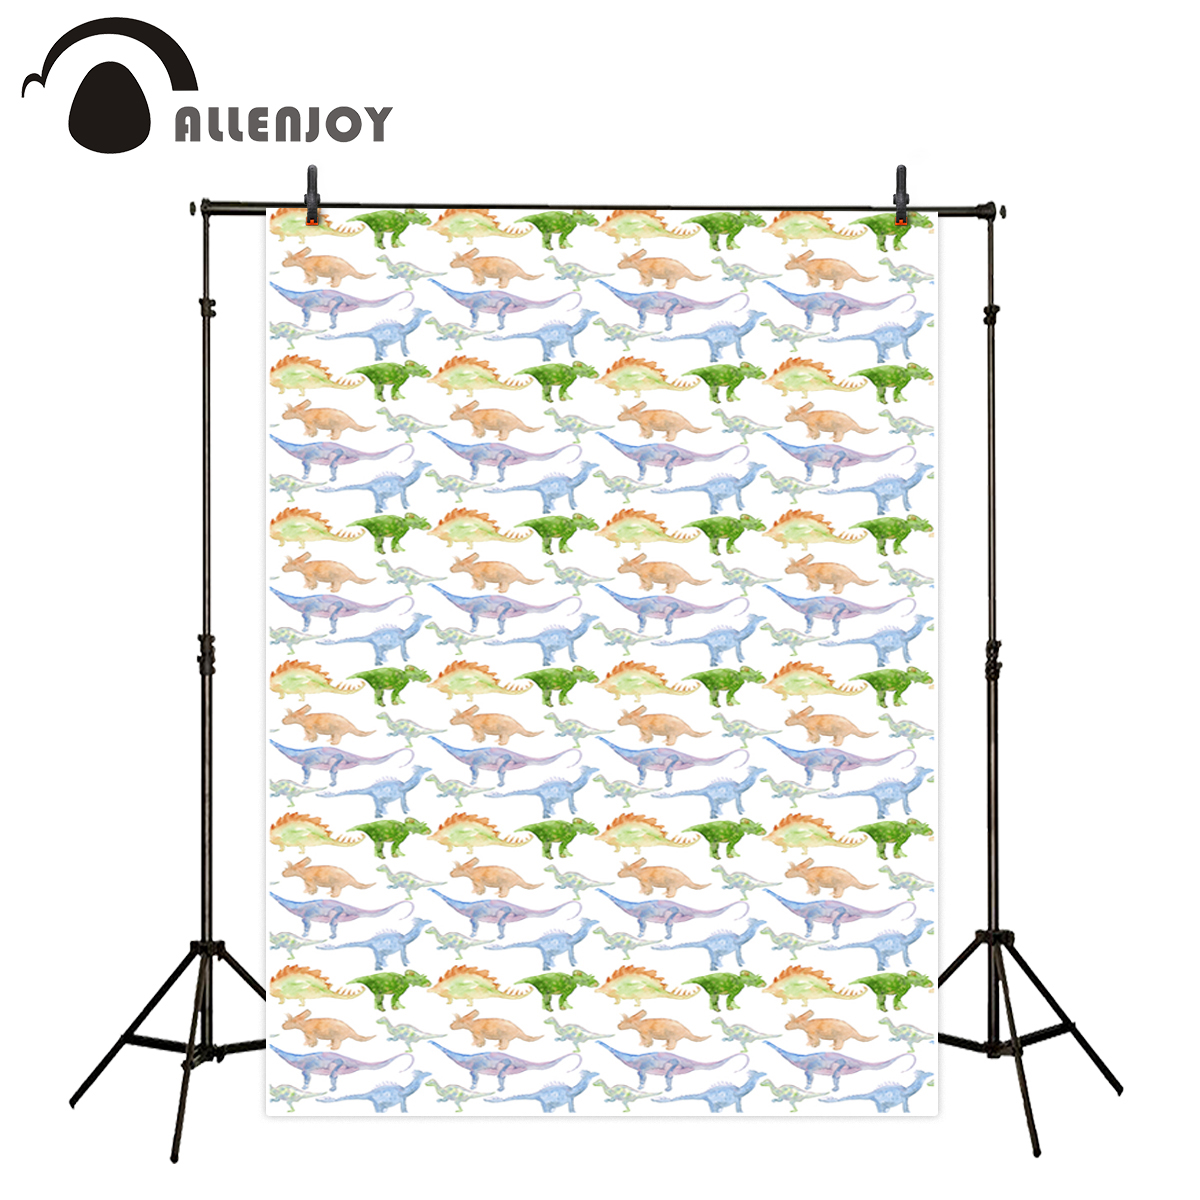 Allenjoy photography backdrop kid watercolor dinosaur theme party birthday cartoon background photo studio photobooth photocall